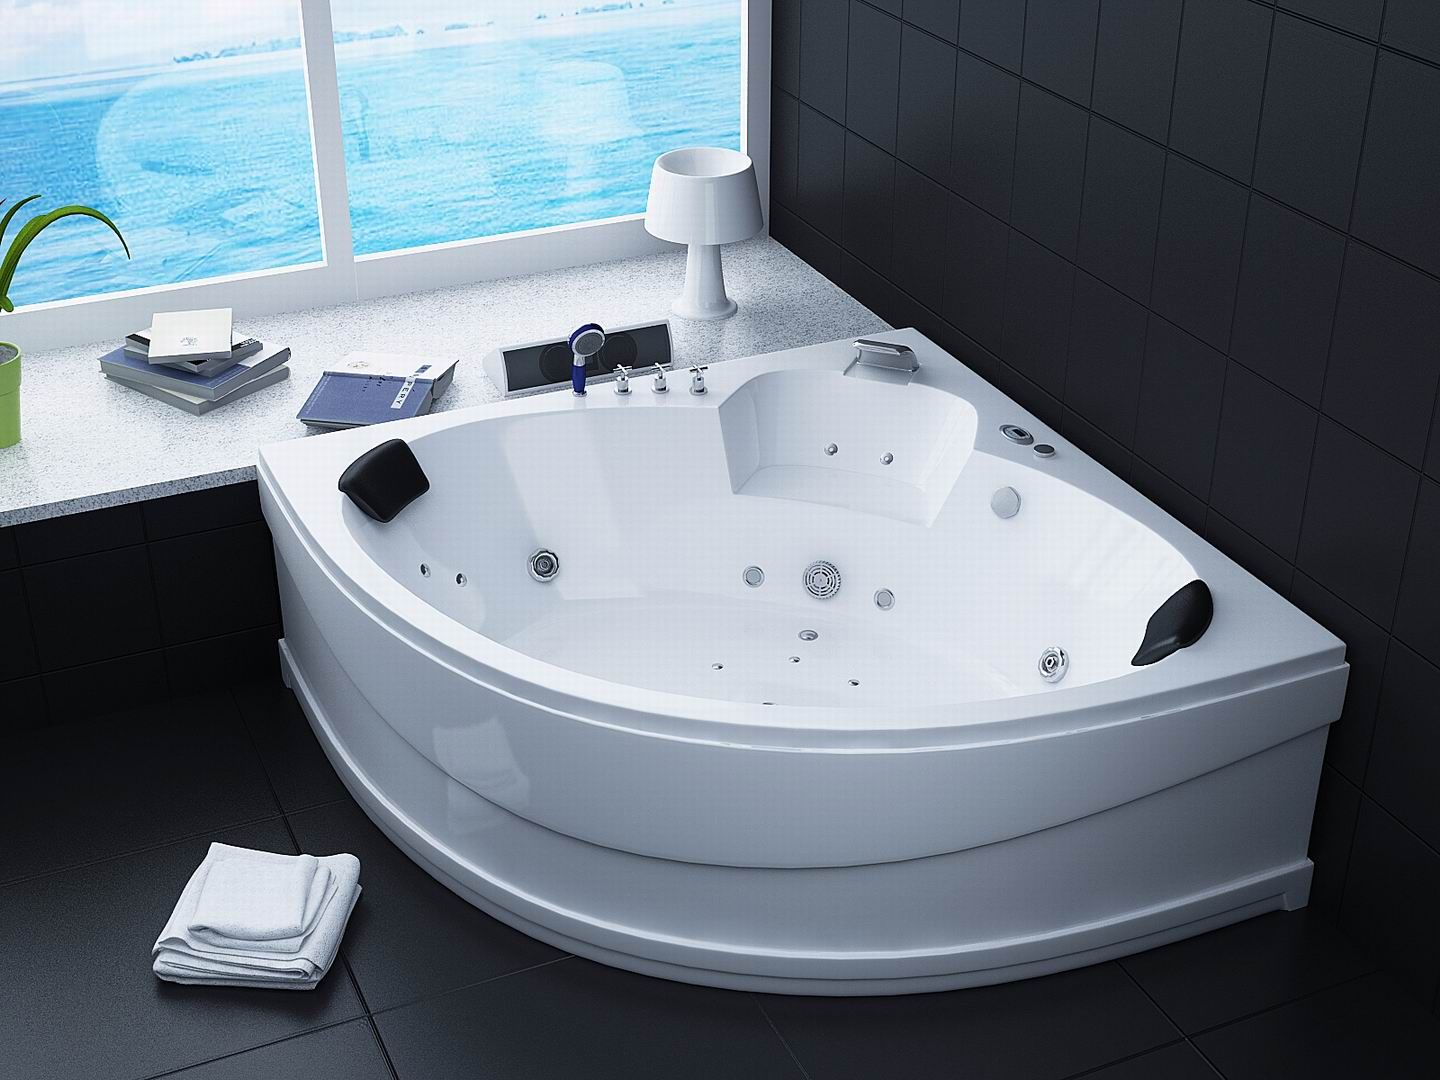 Bathtubs china jacuzzi bathtub mt nr1801 large image for Bathroom ideas jacuzzi